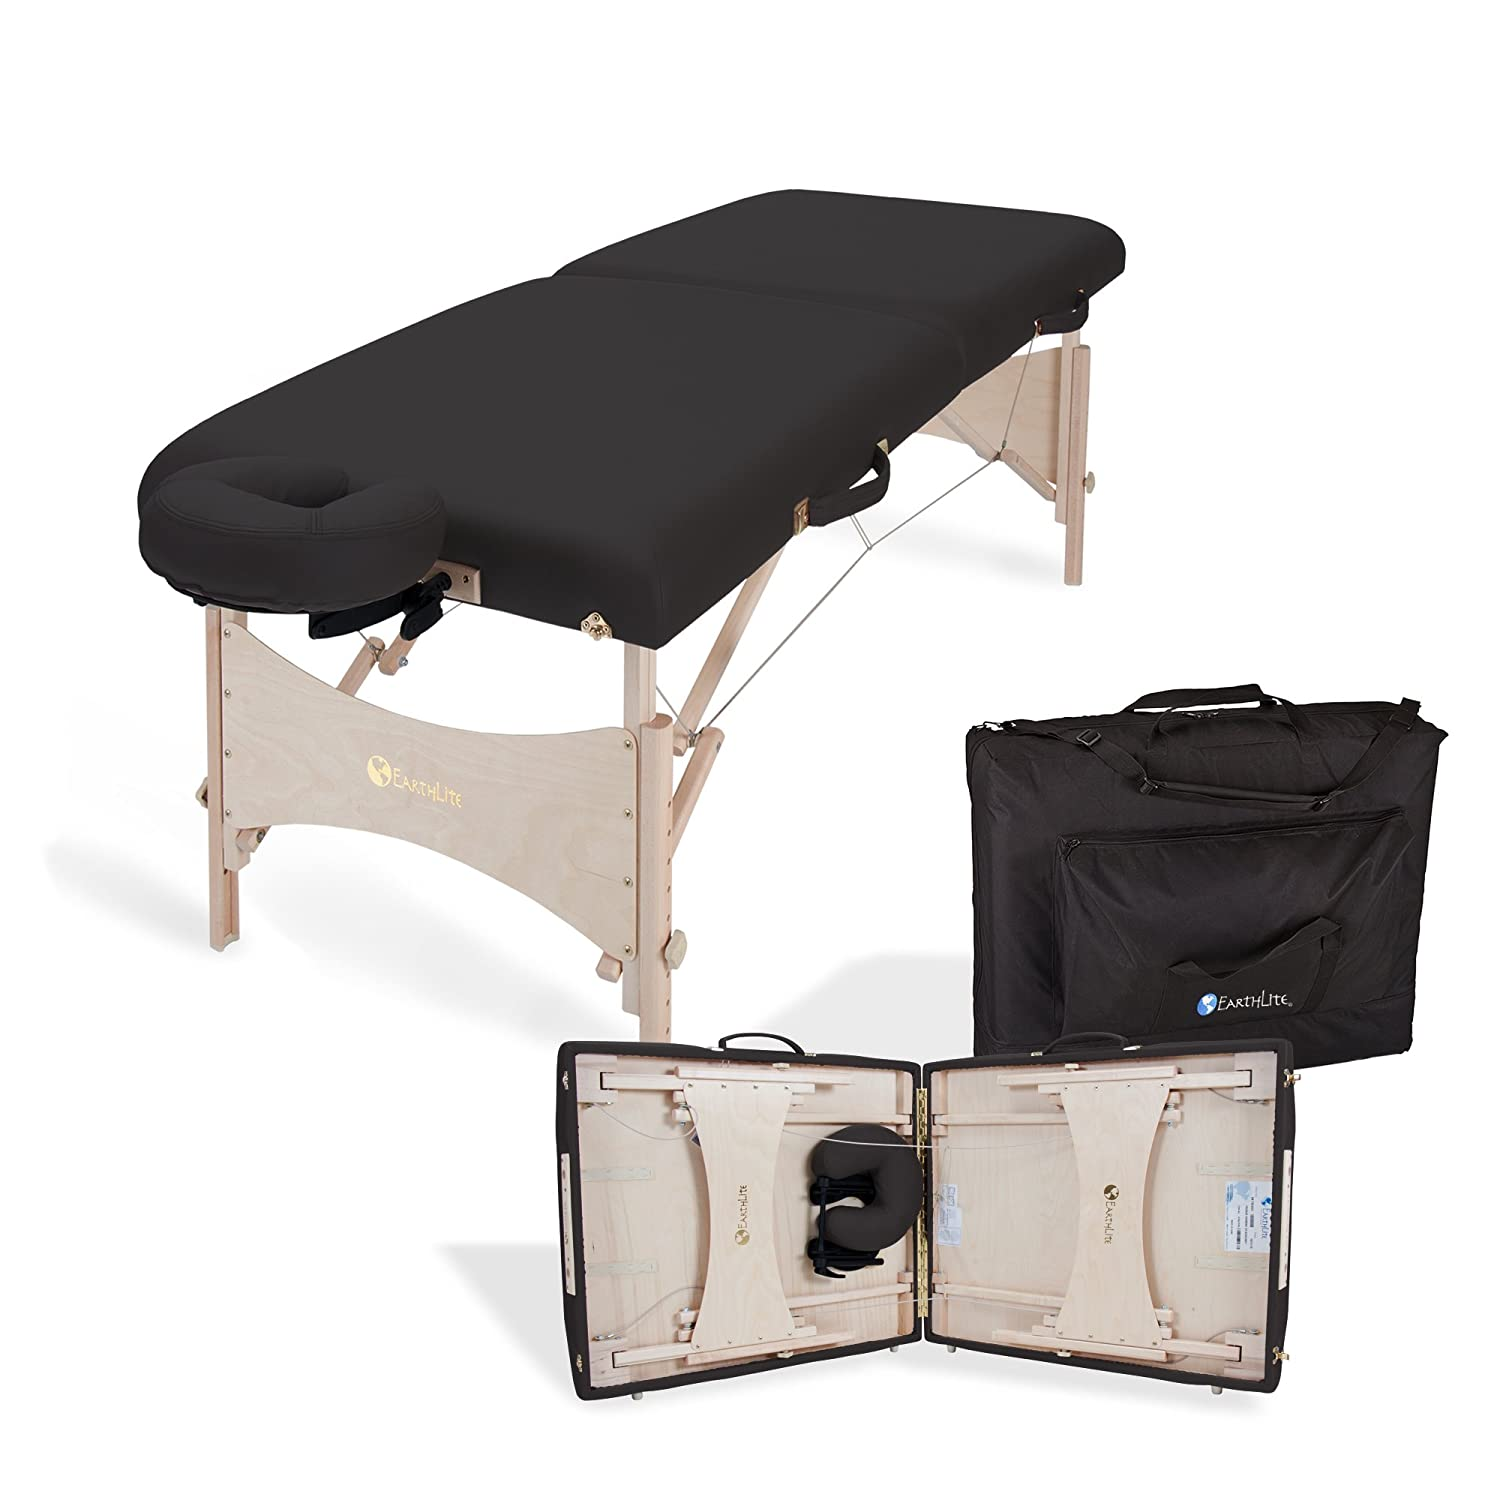 EARTHLITE Harmony DX Portable Massage Table Package – Eco-Friendly Design, Deluxe Adjustable Headr